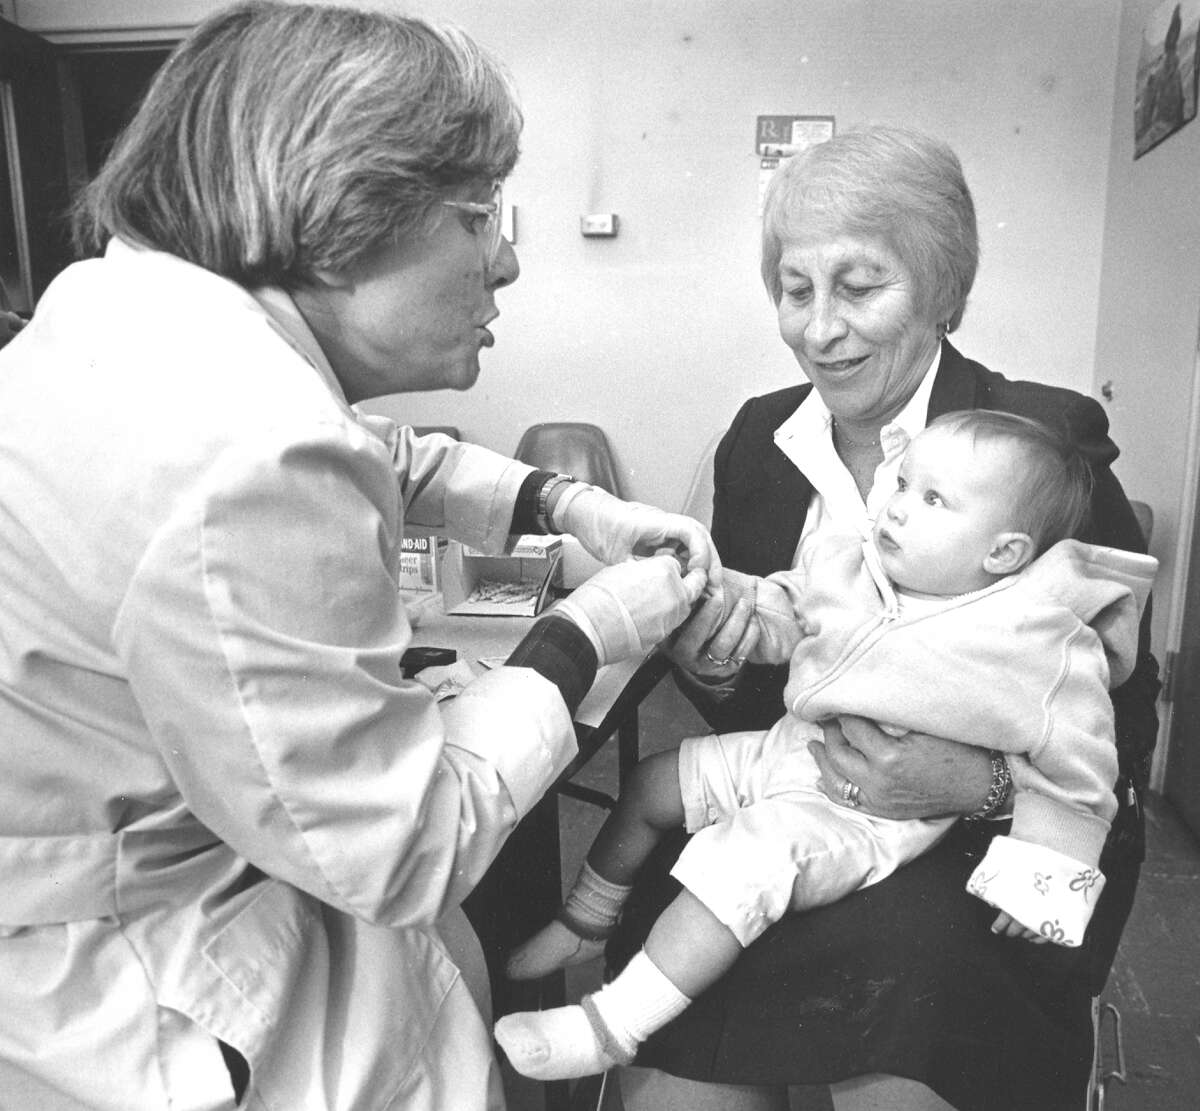 Lee Stoogenke, a lab technician for the Stamford Health Department, does a blood test on 9-month-old Sheila Coperine, whose mother was a teacher at K.T. Murphy School, which was closed due to high lead levels. Holding Sheila is Springdale School nurse Estelle Skigen.